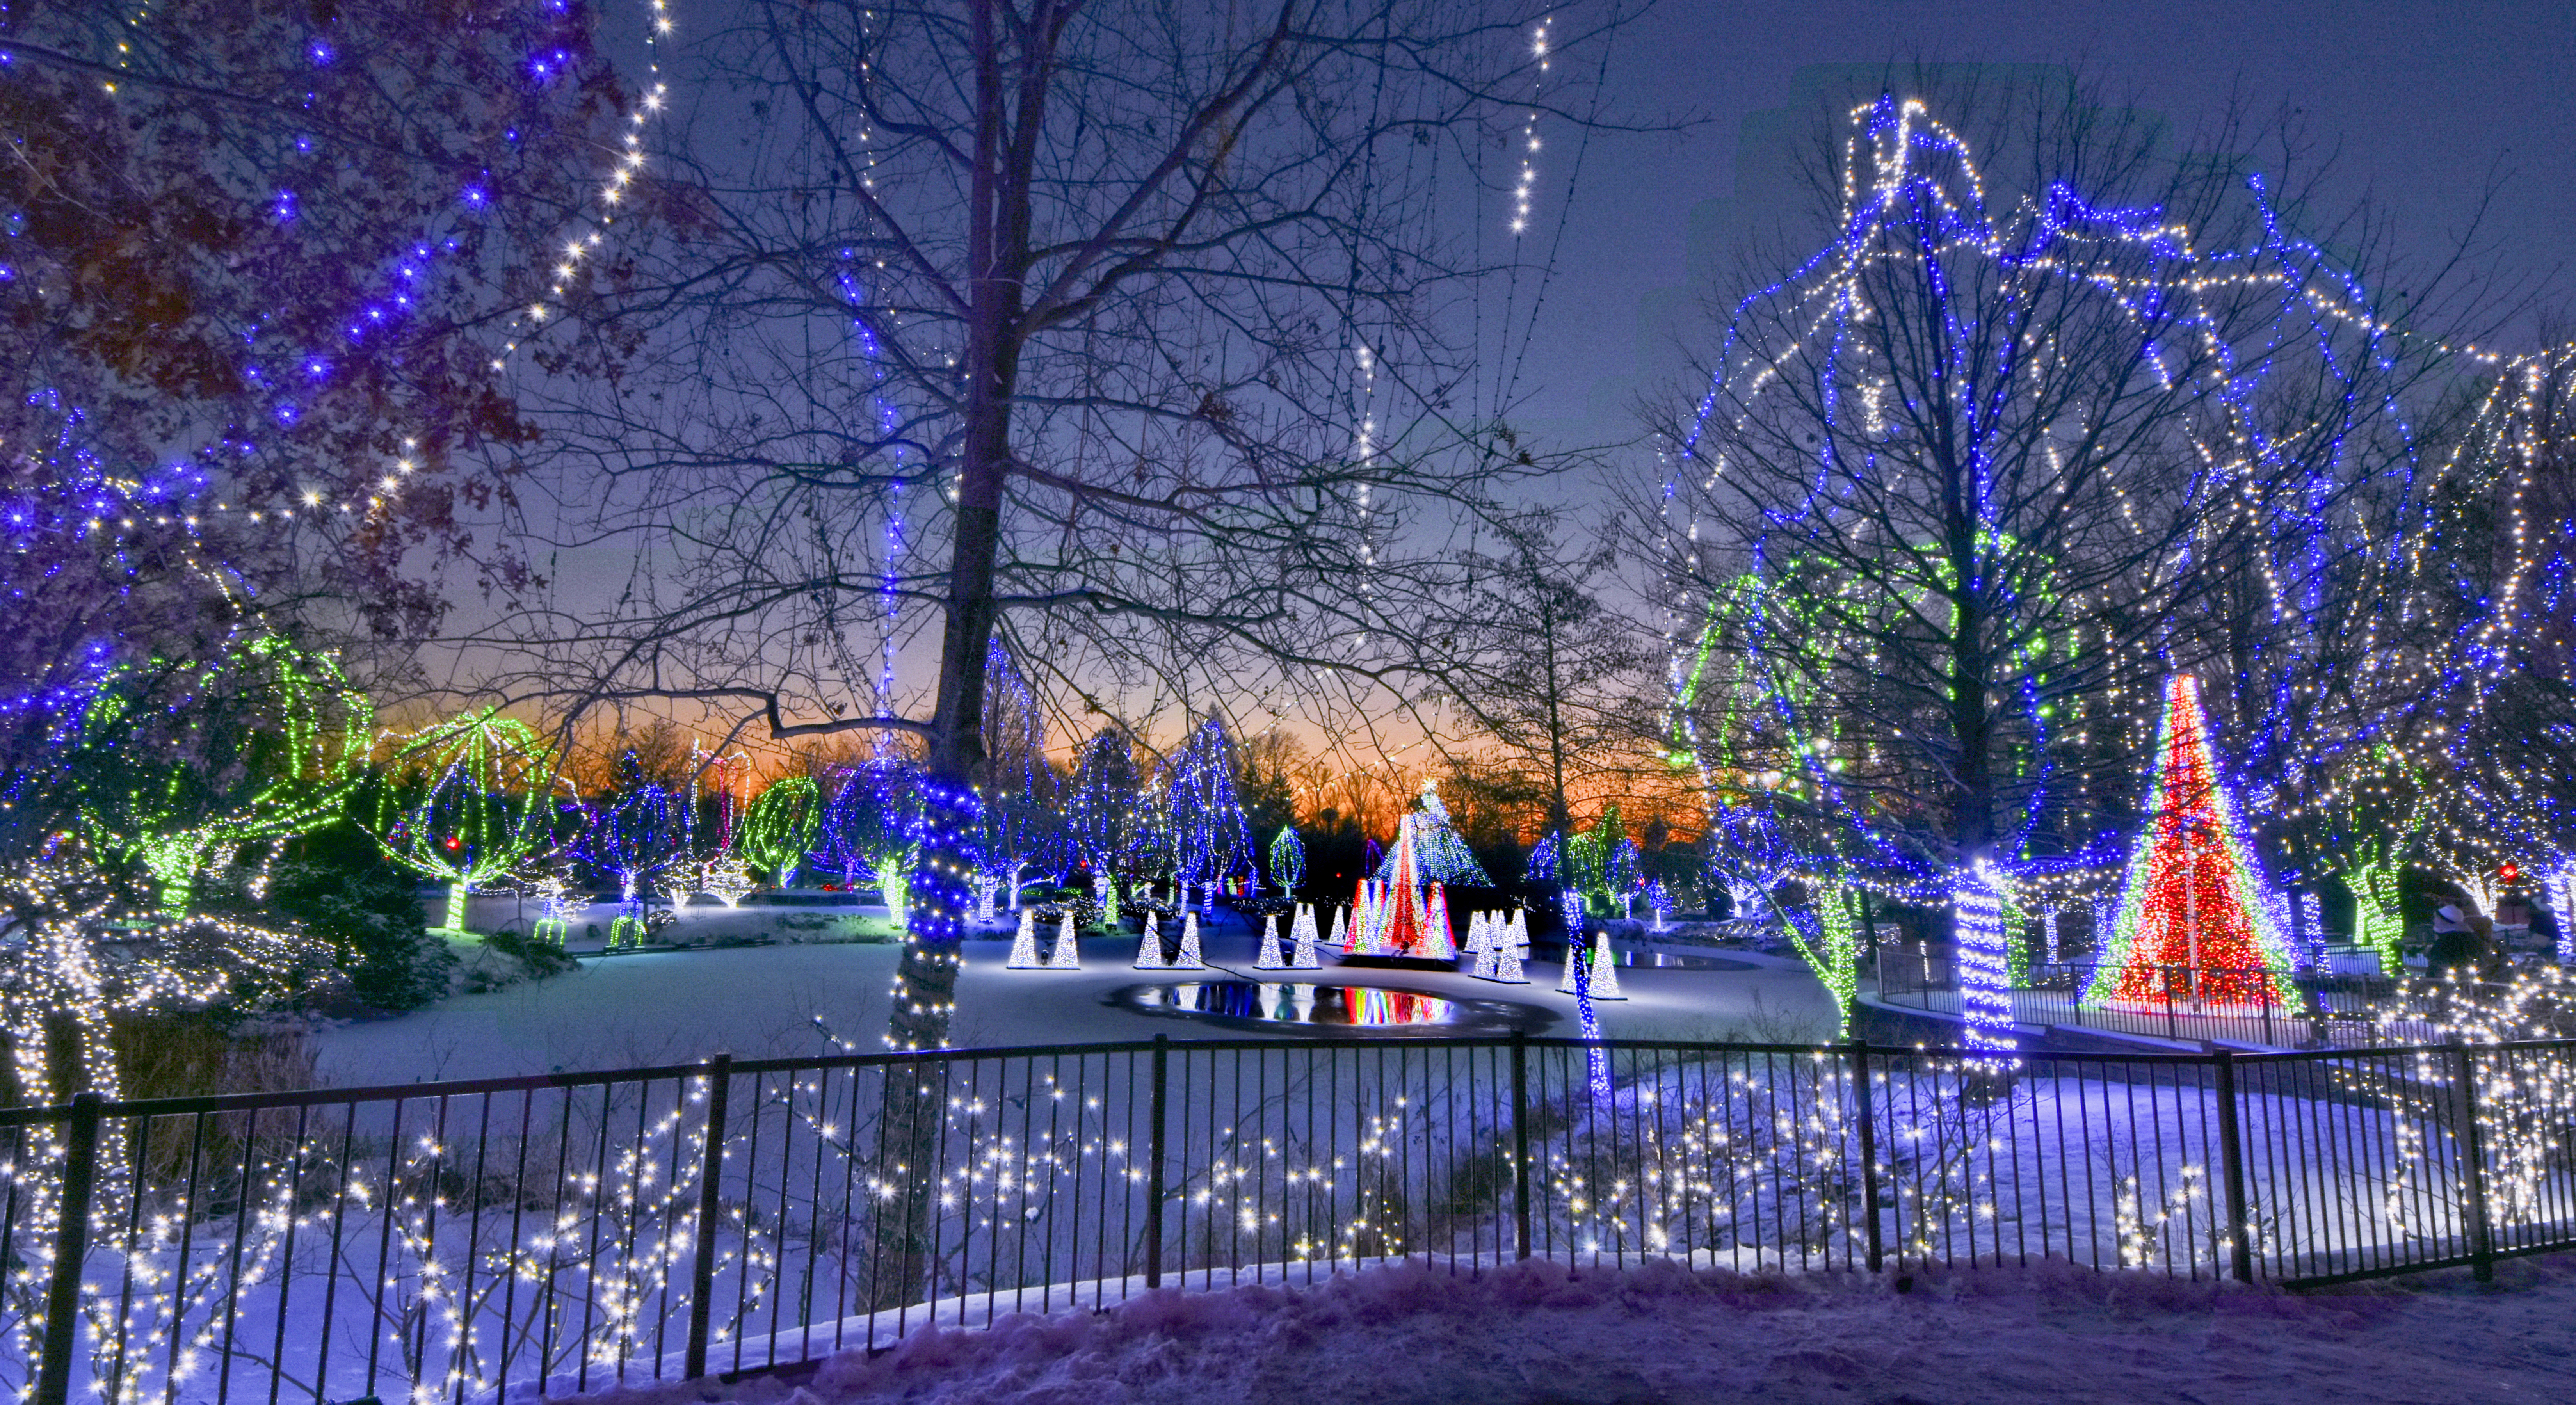 Columbus Ohio Christmas Events 2020 Wildlights | 11/20/20   1/5/21 | Powell, OH 43065